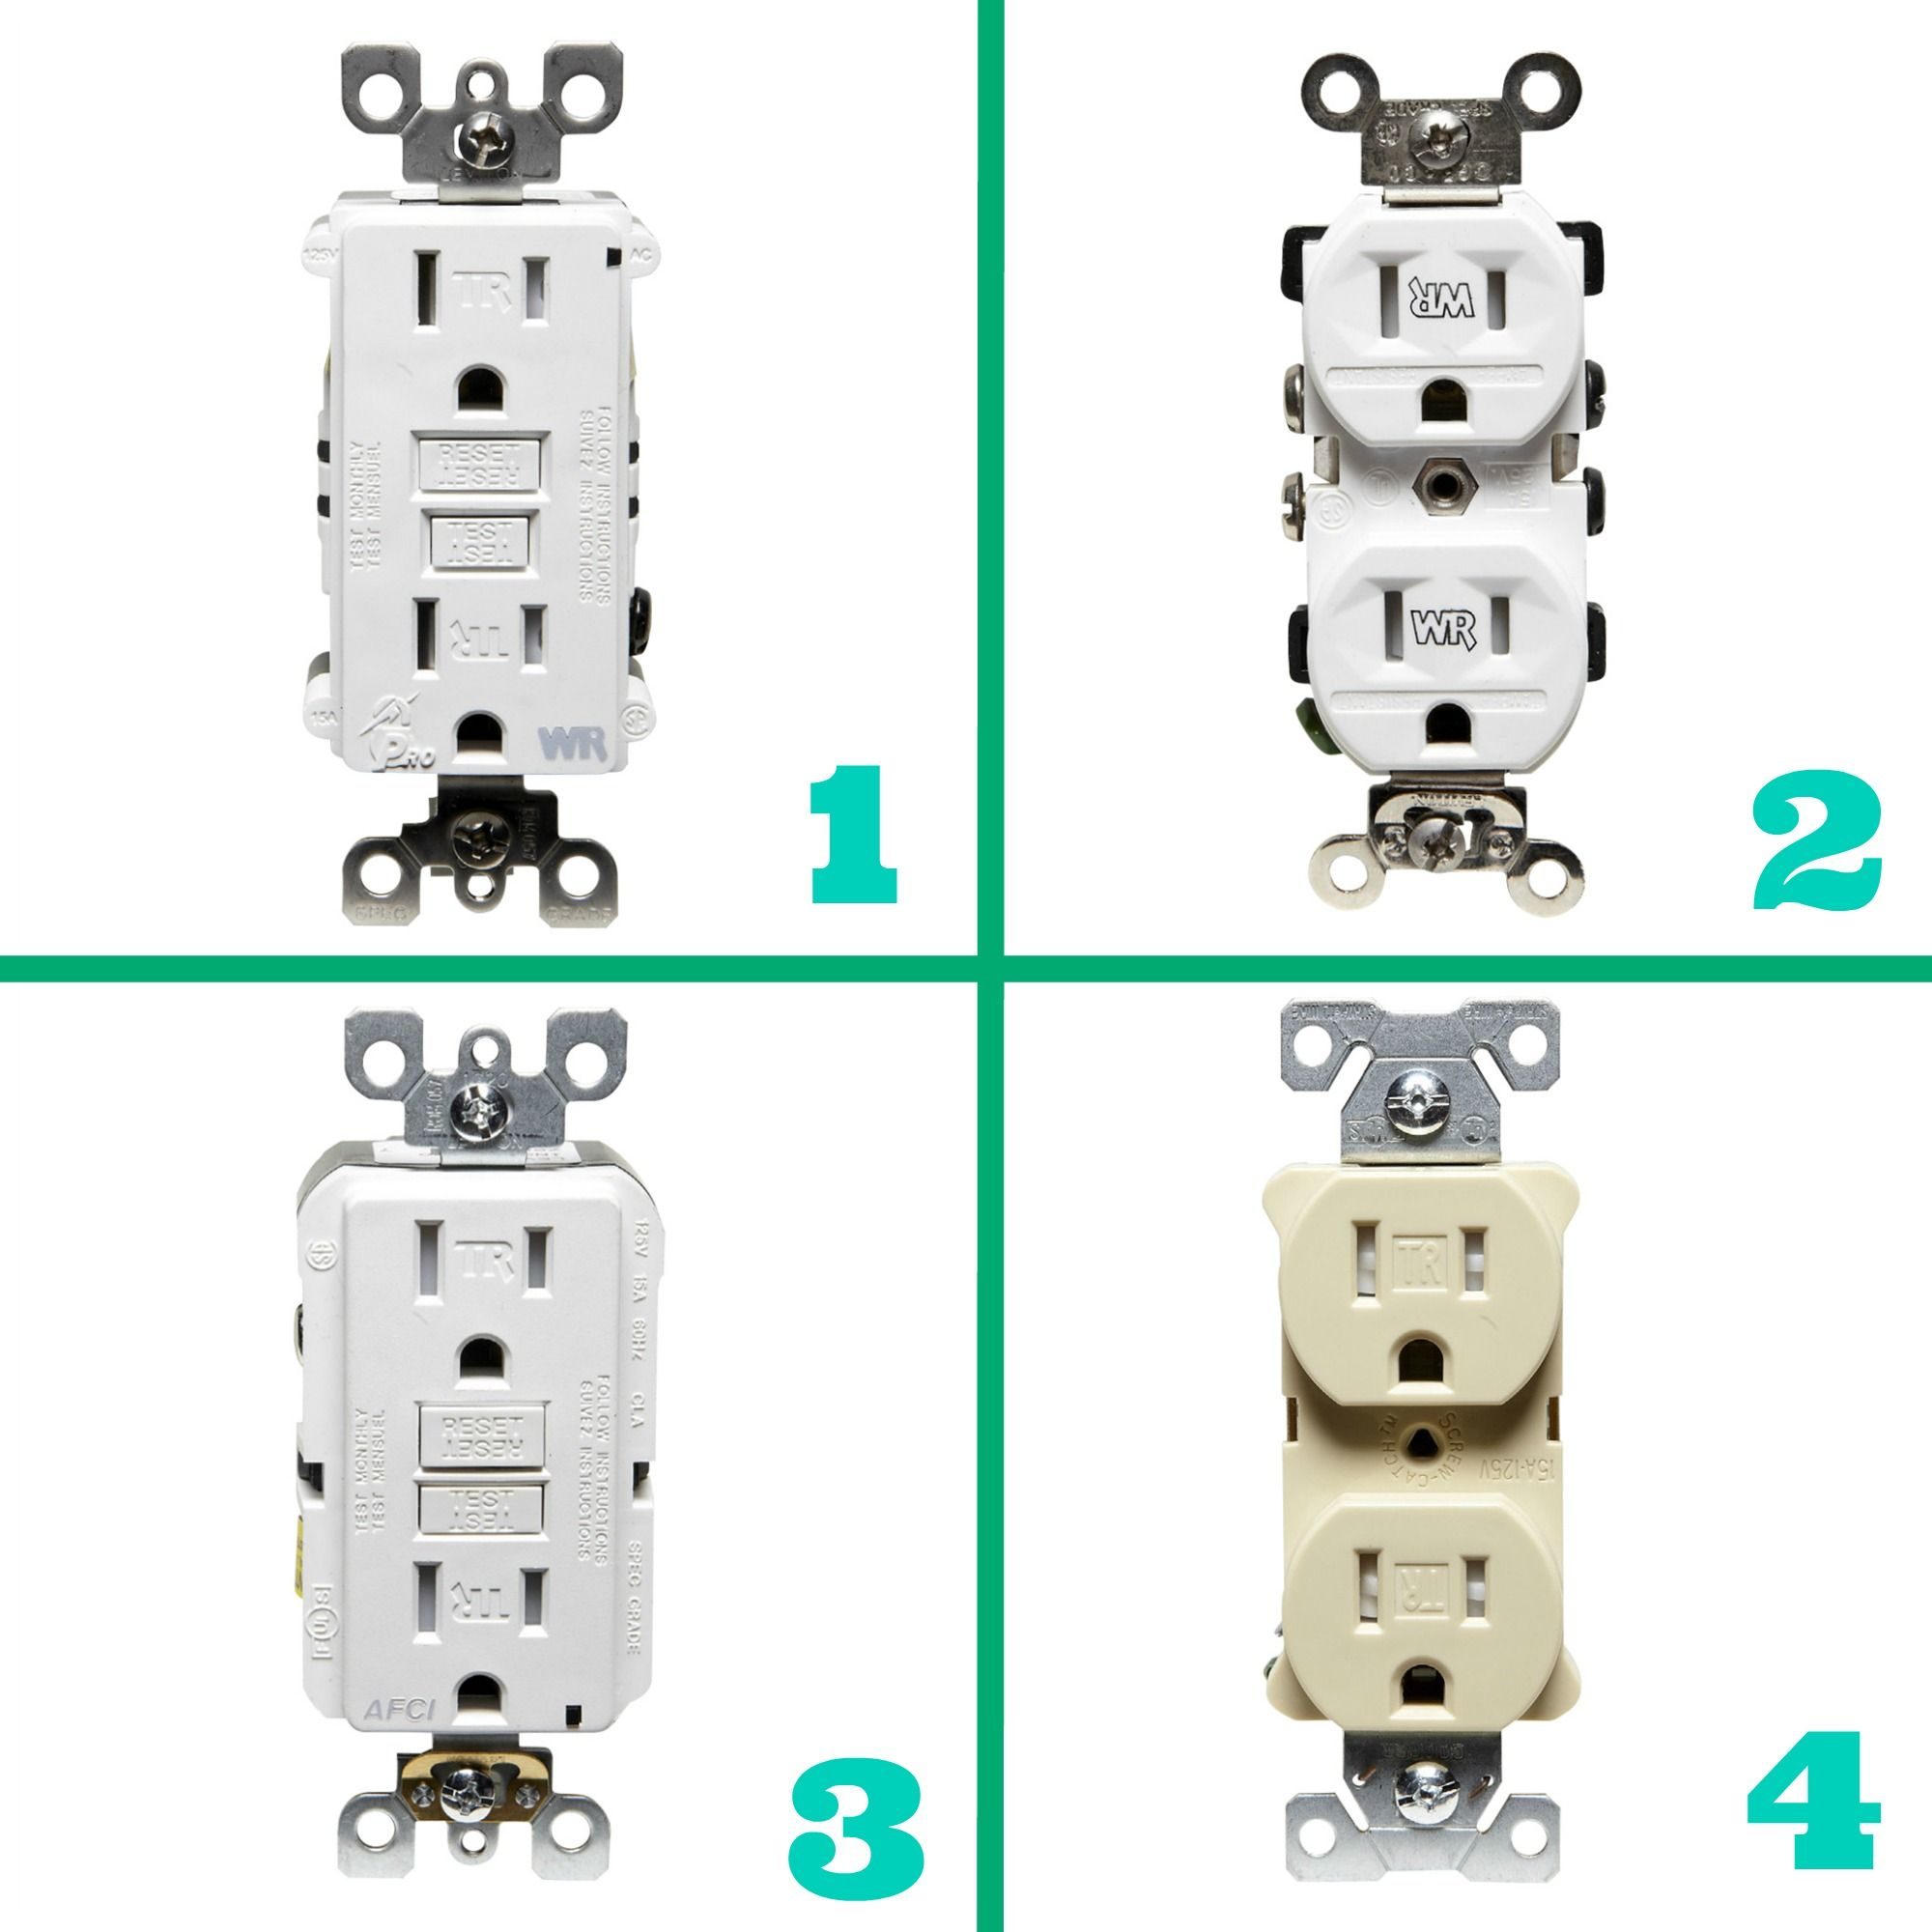 Wiring A Switch And Outlet The Safe Easy Way Home Stuff Types Of Outlets Switches